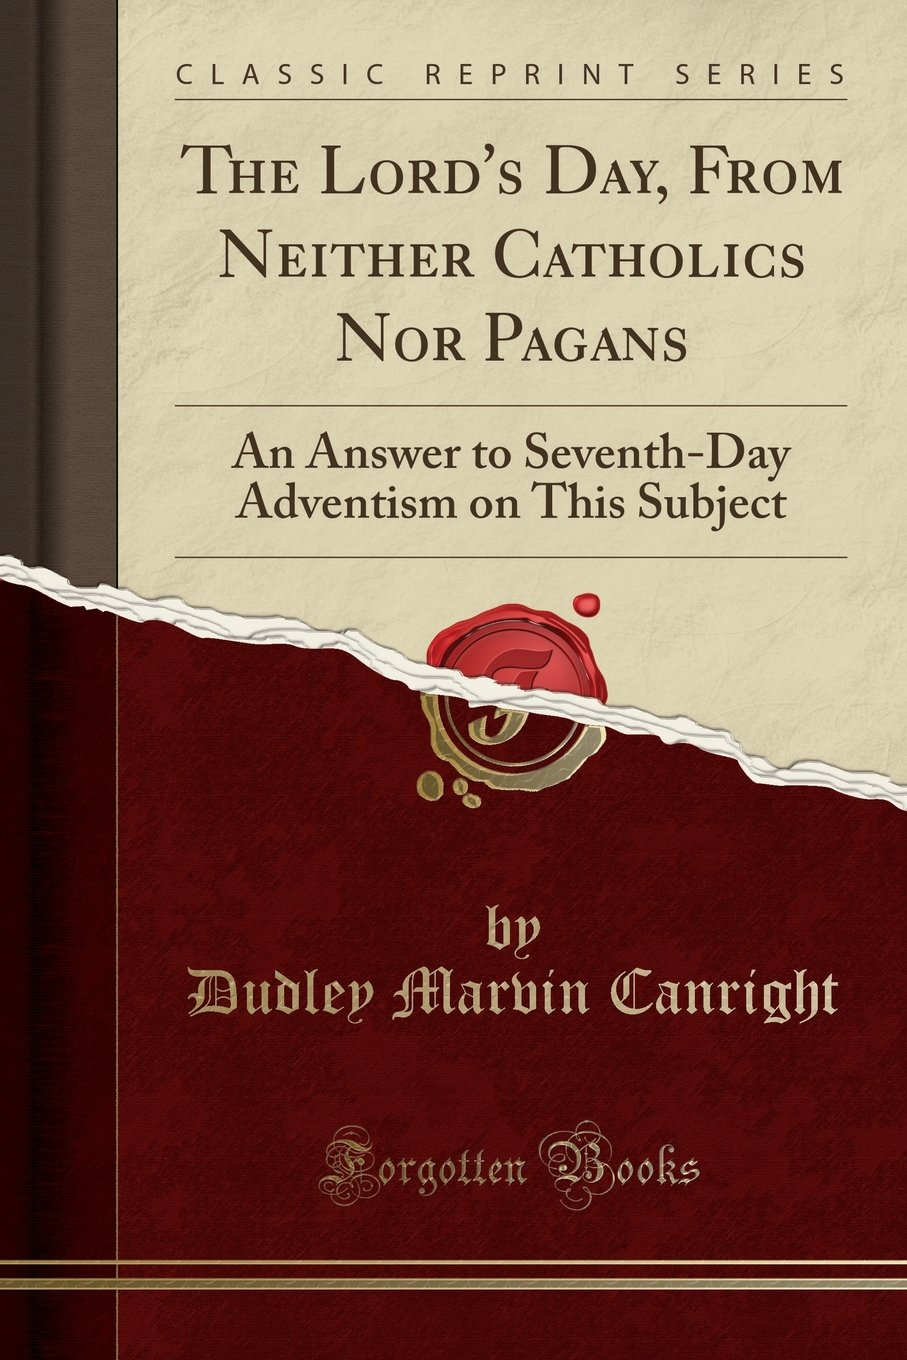 From Neither from Catholic Nor Pagan an Answer to Seventh-Day Adventism On This Subject